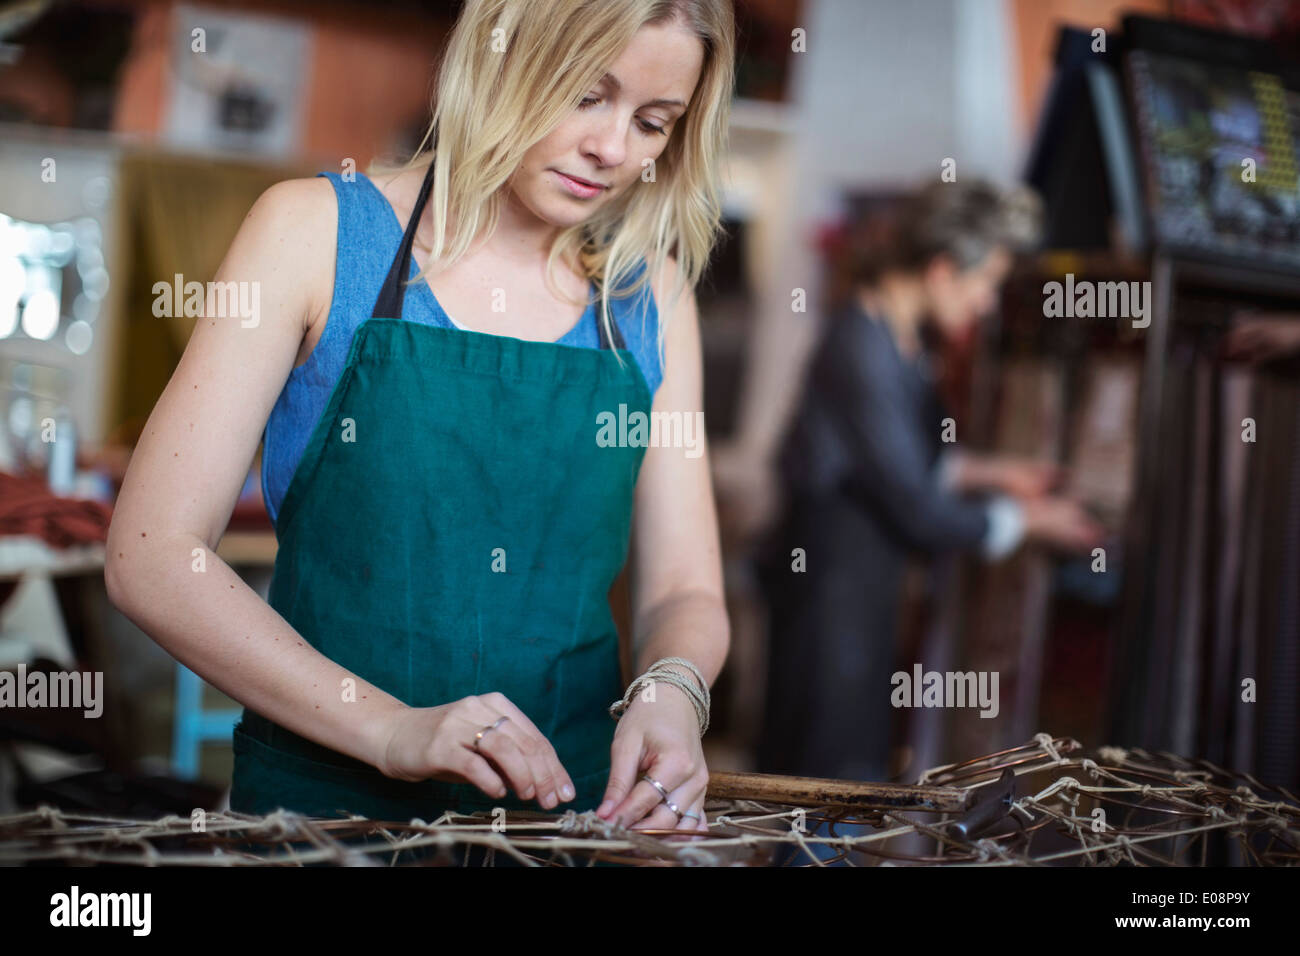 Young female worker making chaise longue at workshop - Stock Image